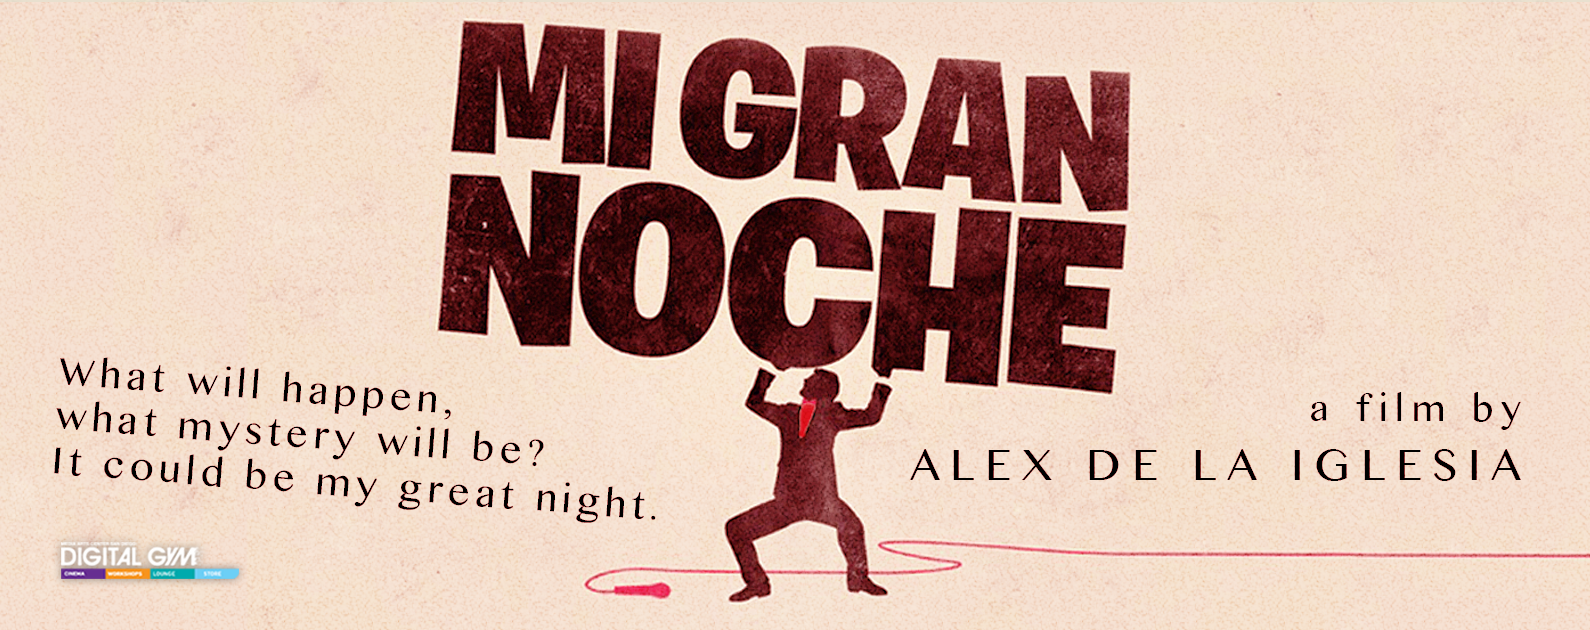 Álex de la Iglesia's hilarious MI GRAN NOCHE returns to San Diego (April 15-21)